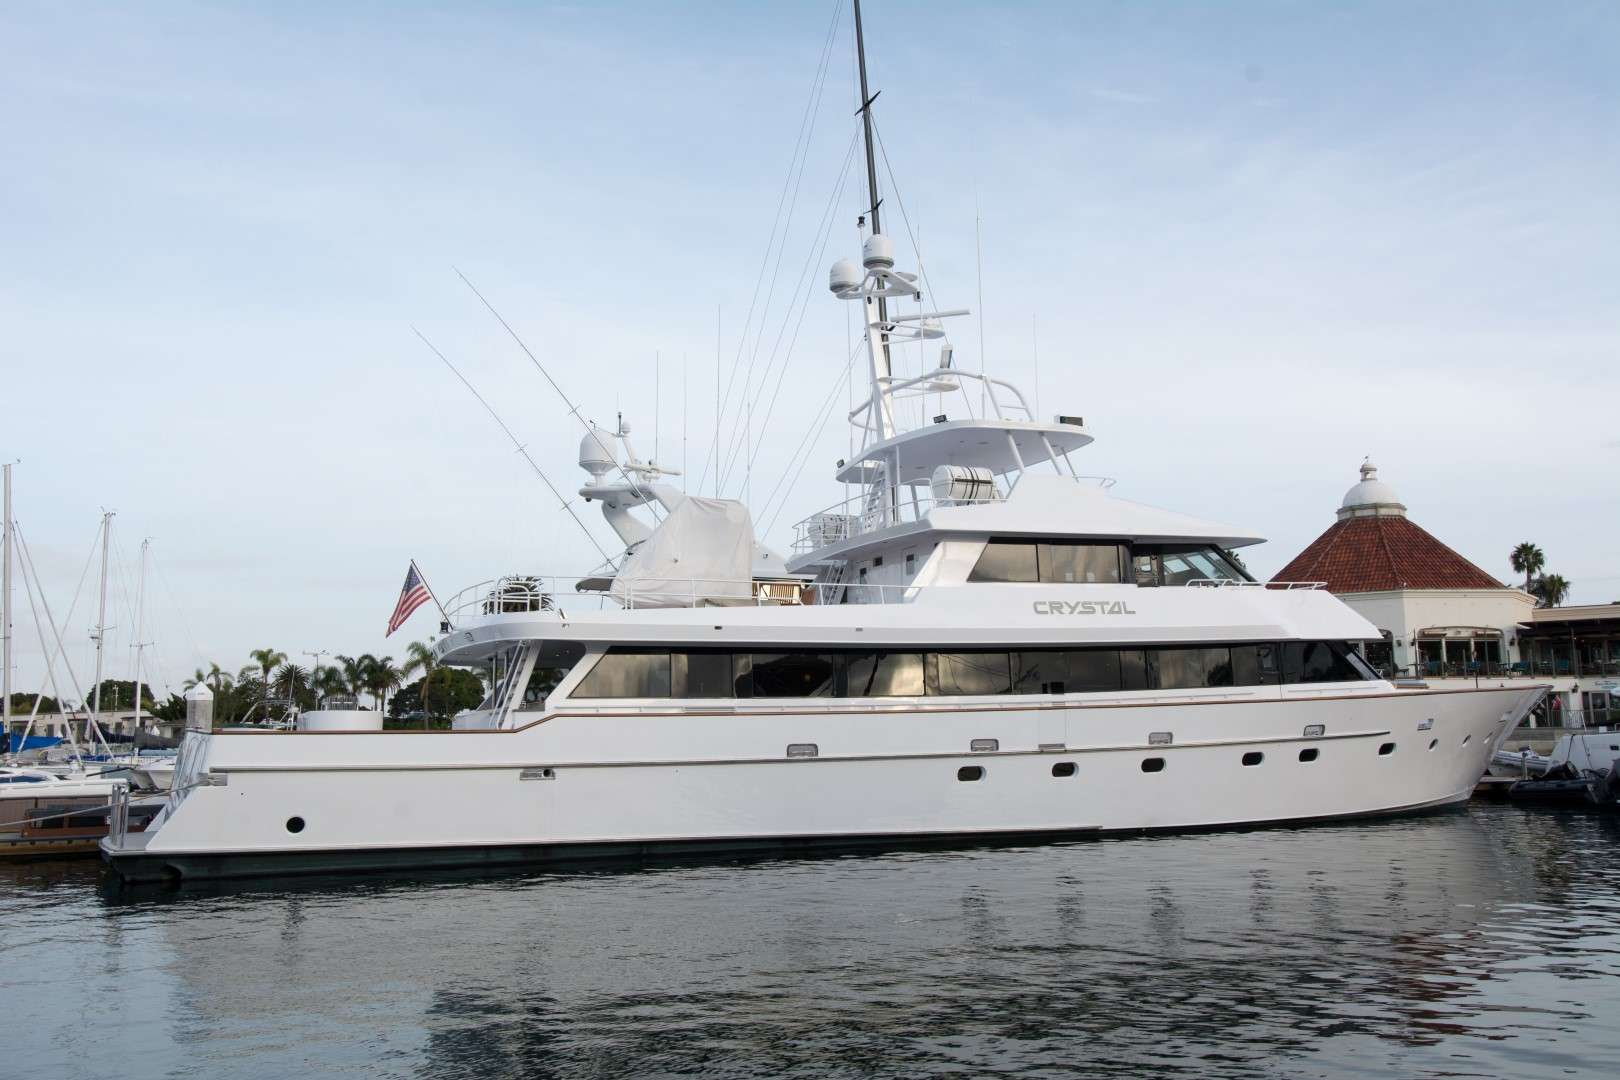 Charter with CRYSTAL on compassyachtcharters.com